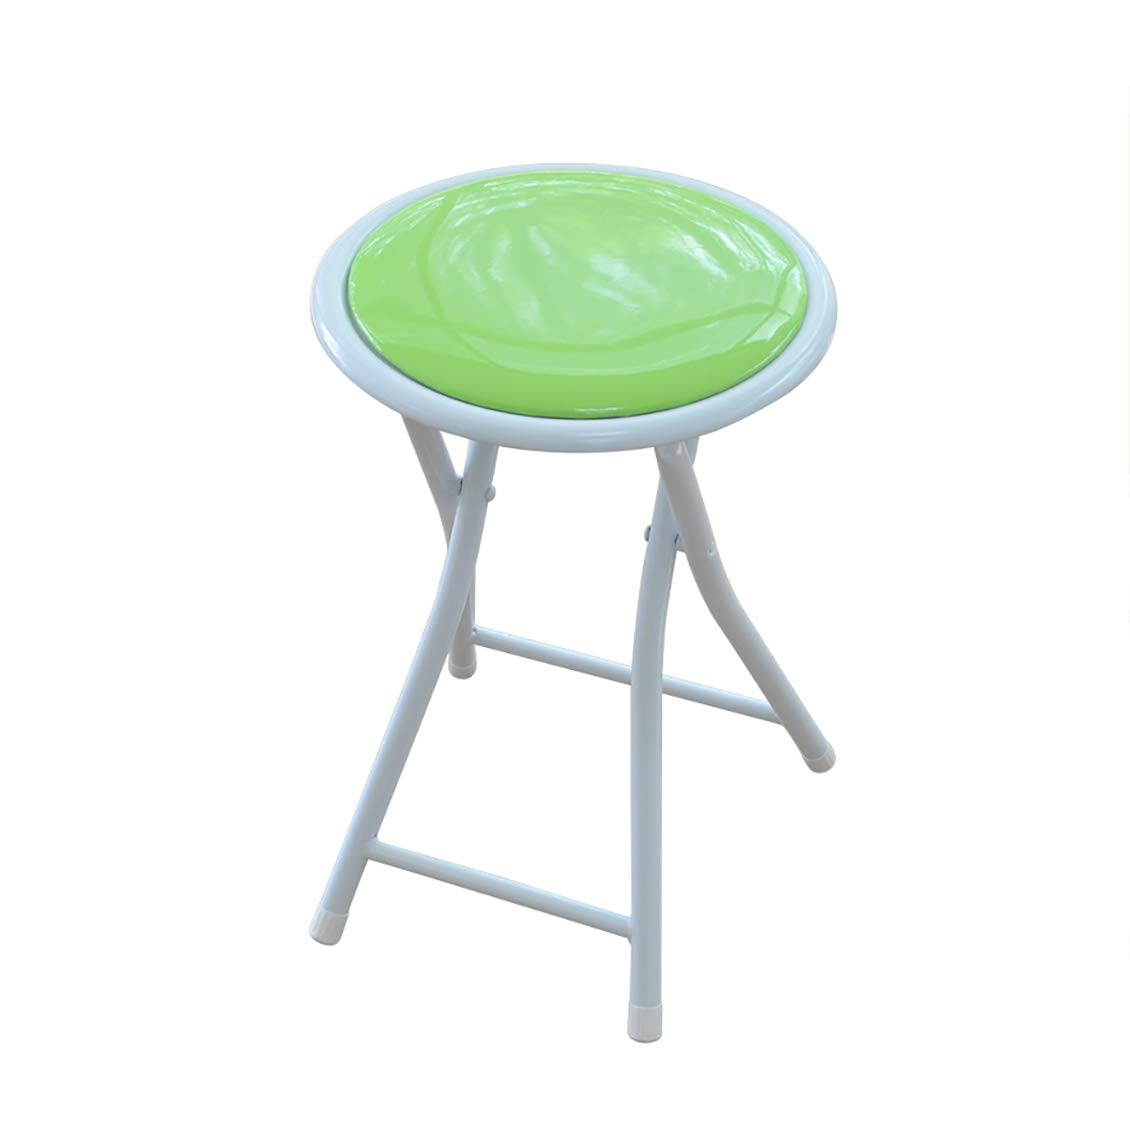 C XHLZDY Folding Chair, Dining Chair Folding Stool Portable Chair Small Round Bench (30×30×43cm) (color   B)